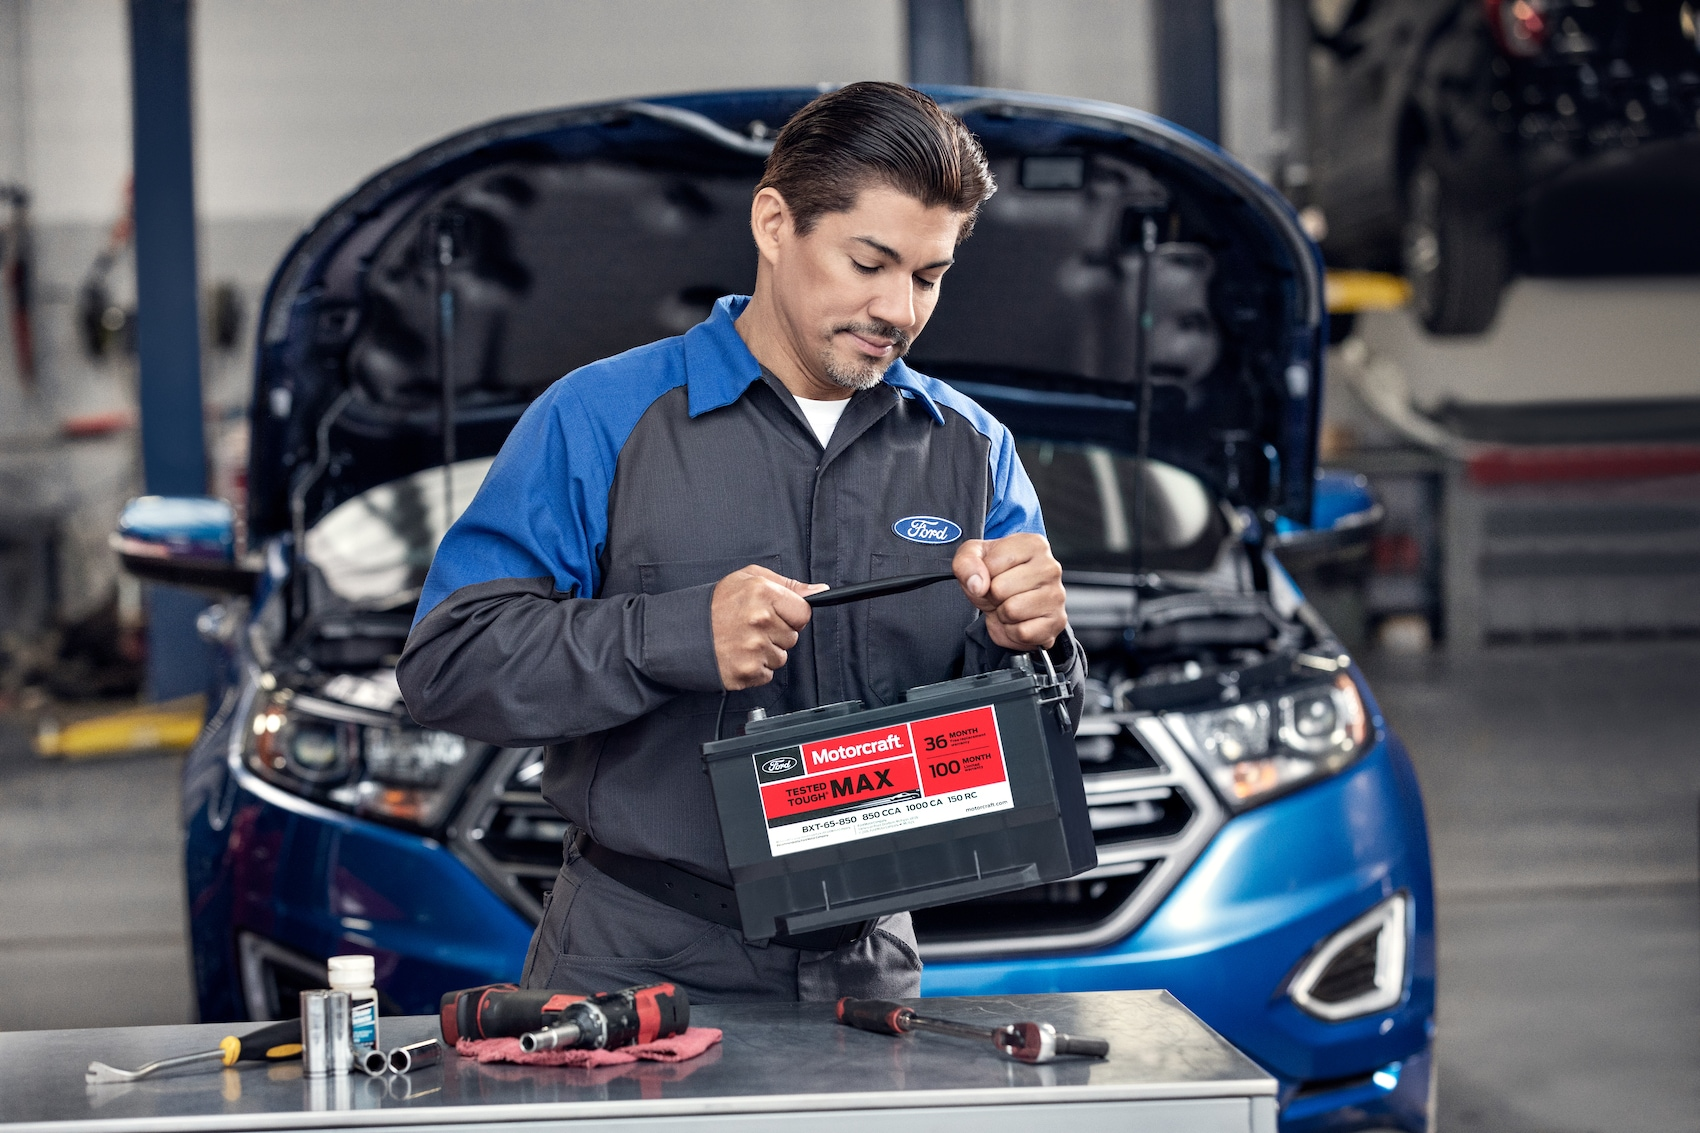 Len Stoler Ford is a Ford Dealership in Owings Mills near Woodlawn MD | technician checking engine